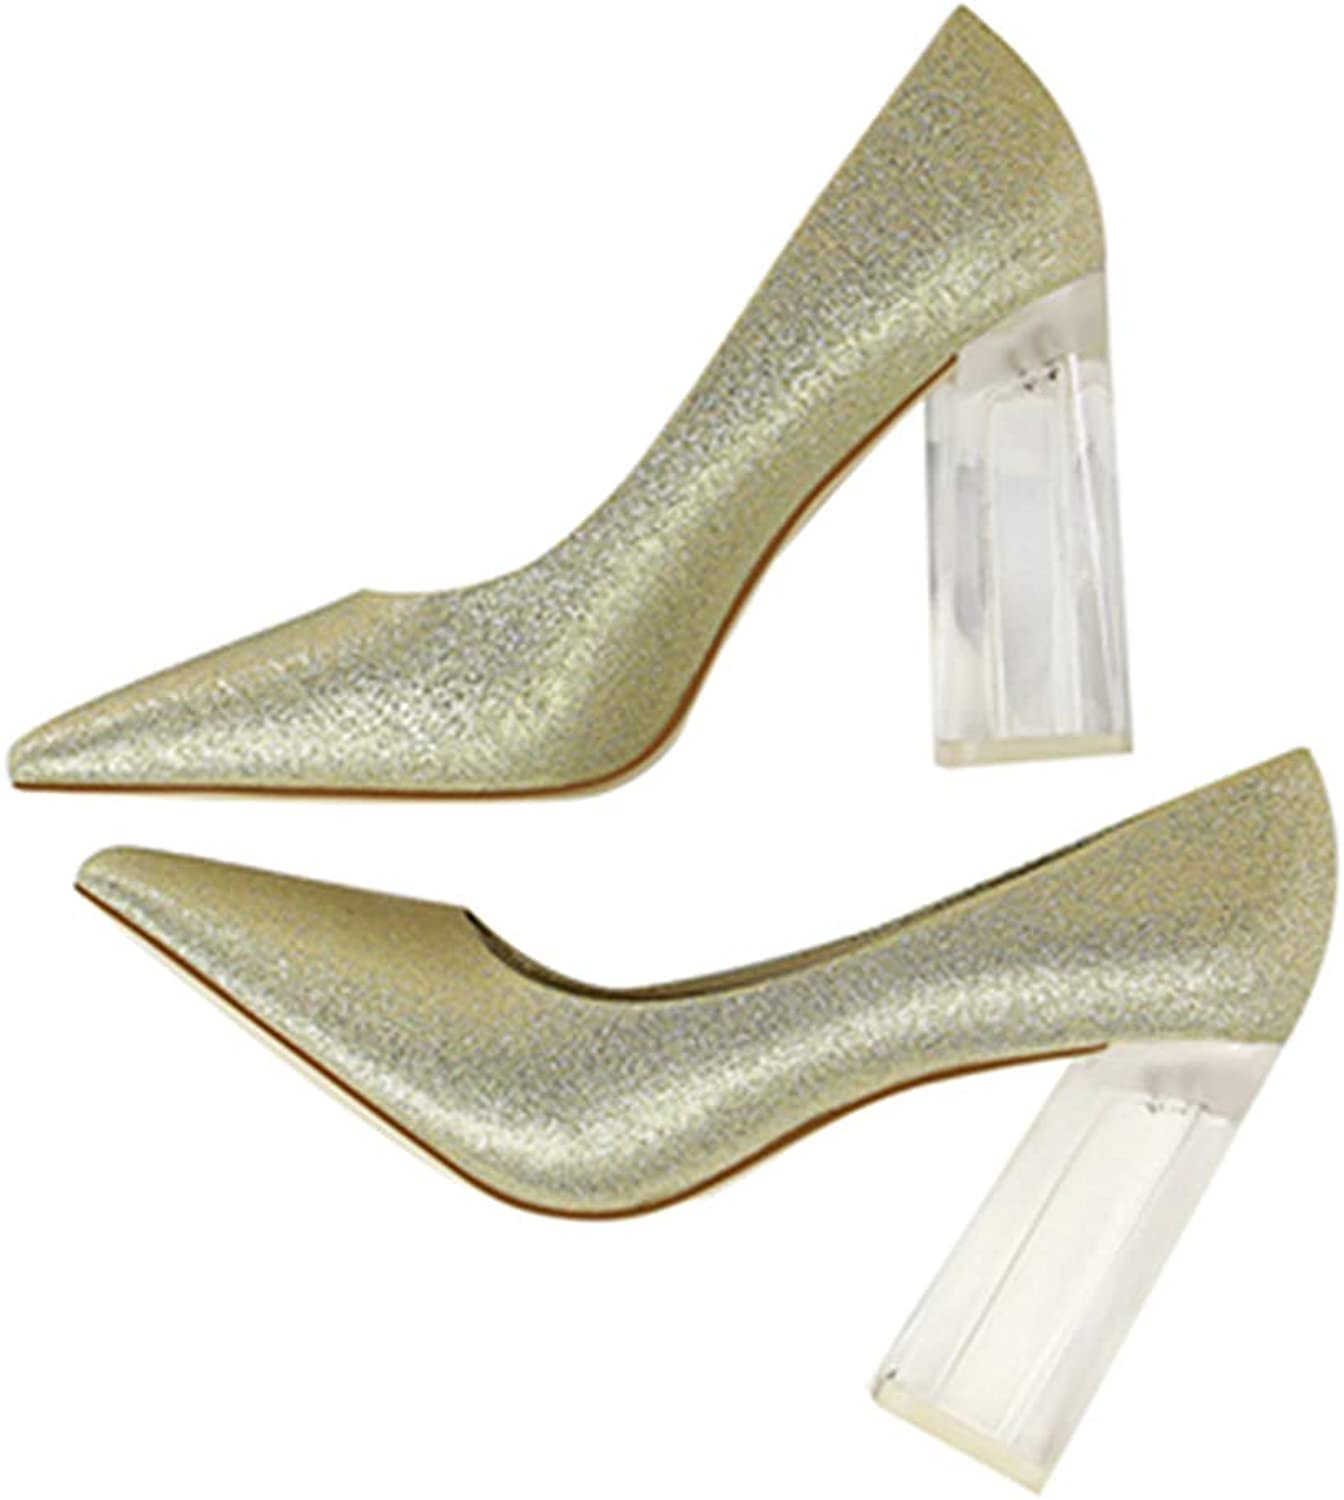 Kyle Walsh Pa Women Fashion Pumps Transparent Block Heel Pointed Toe Ladies Sexy High-Heel shoes